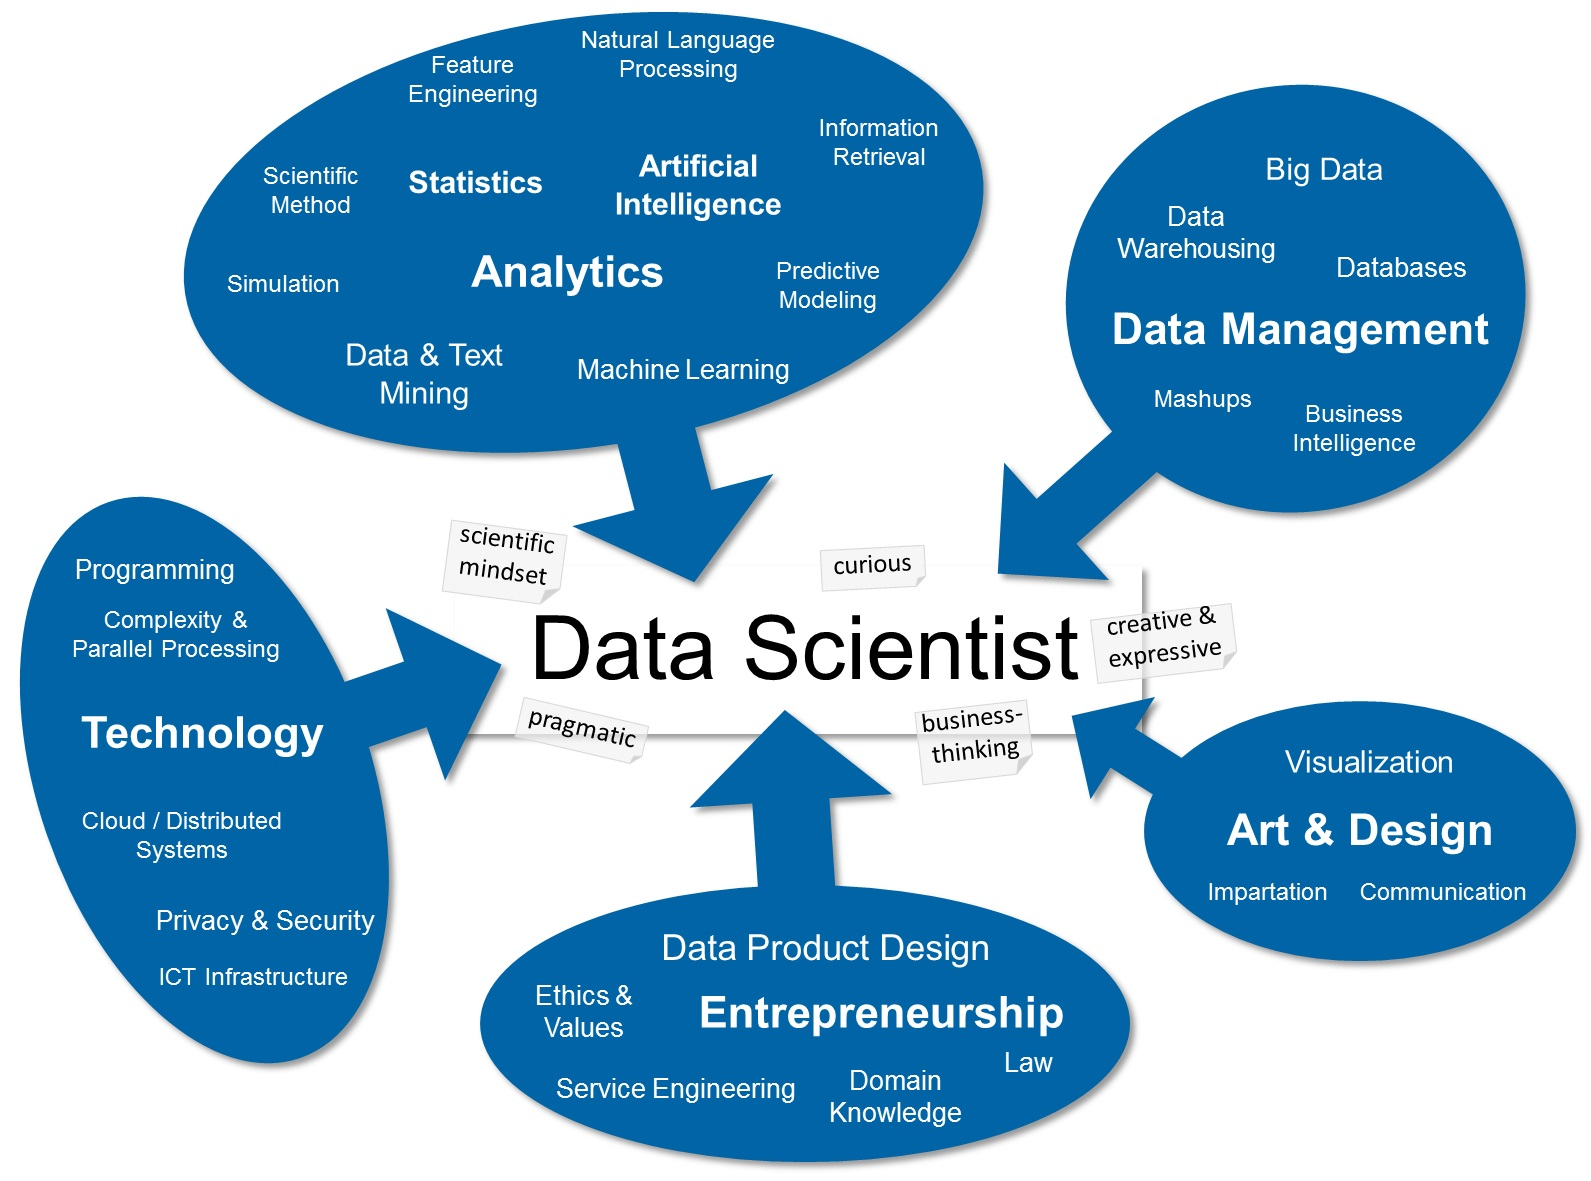 Data science skill set map